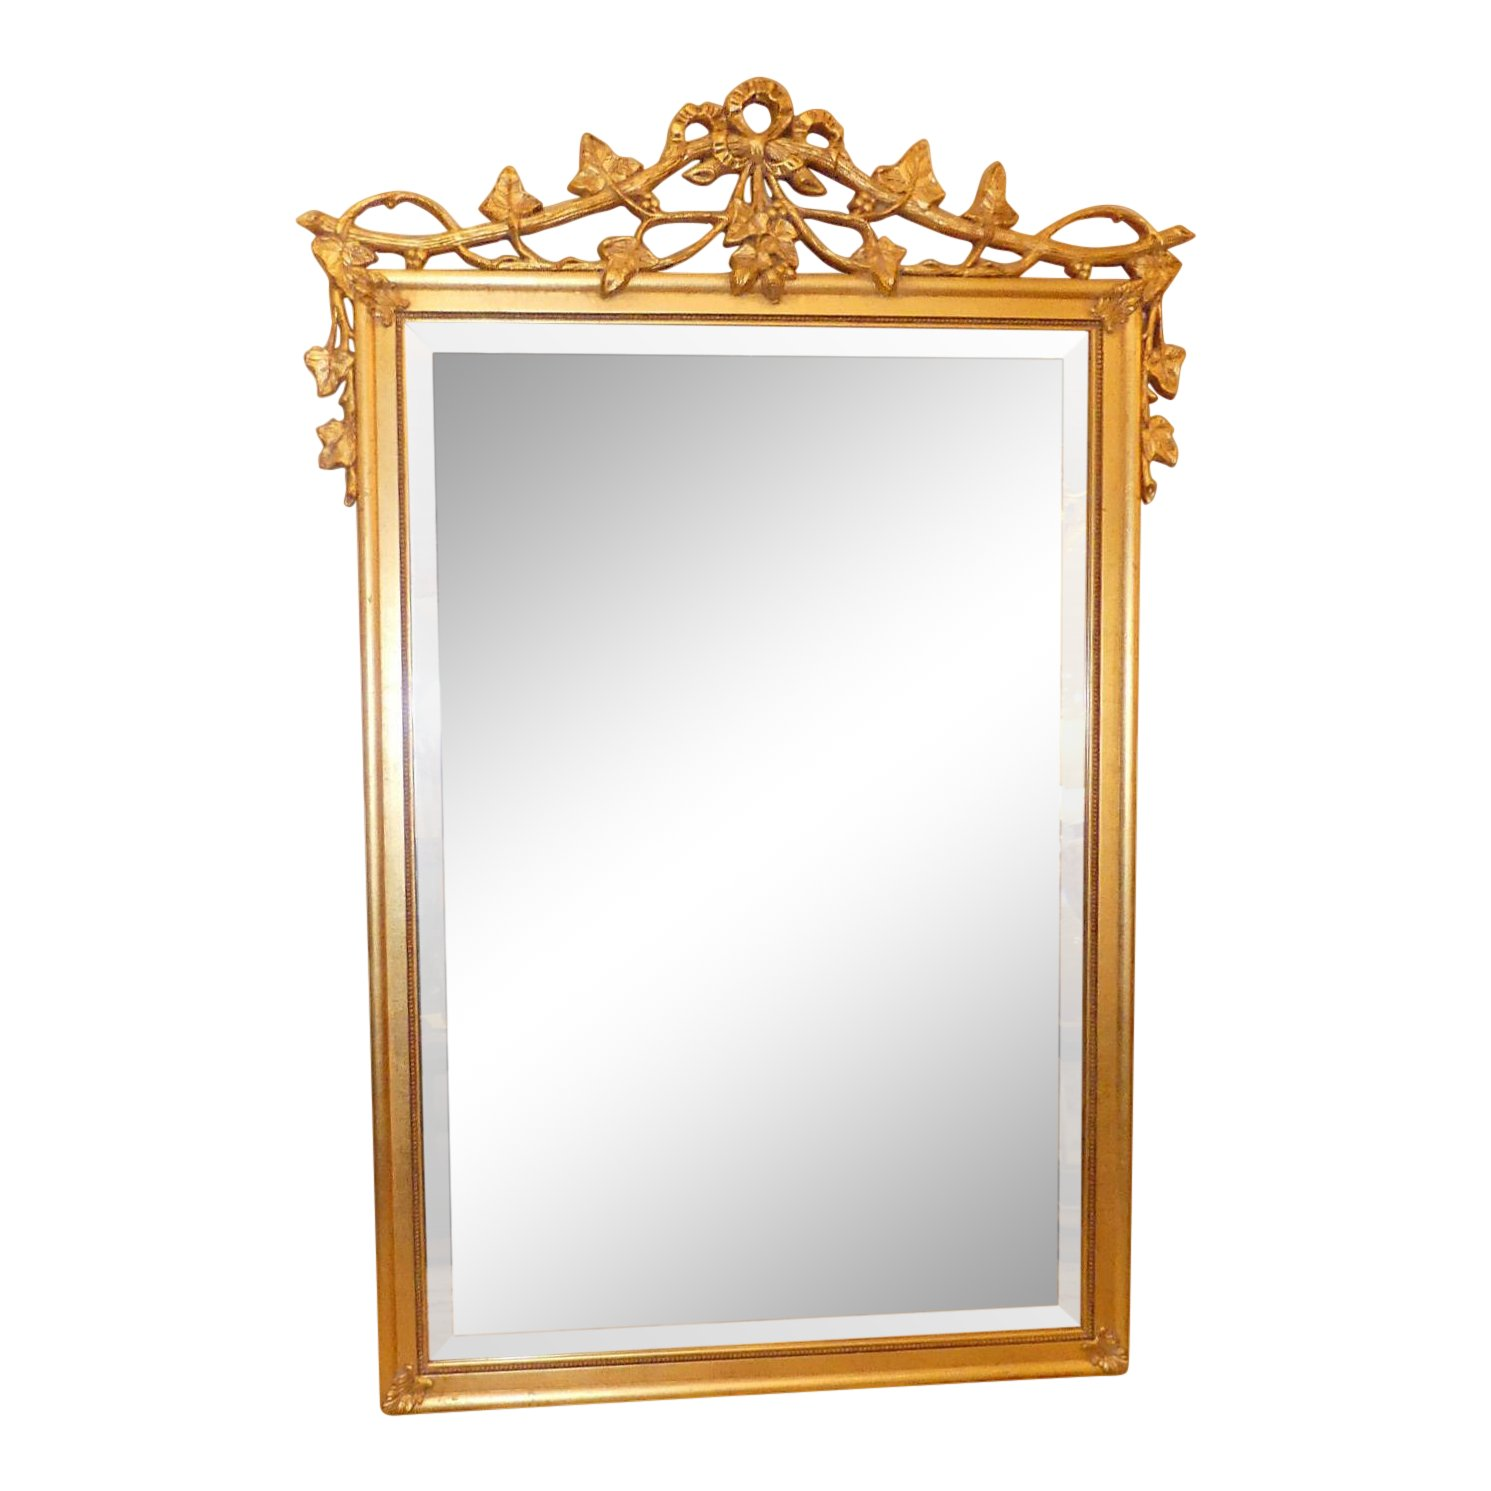 Majestic Mirror Co. Giltwood Mirror 36x53 $1,149